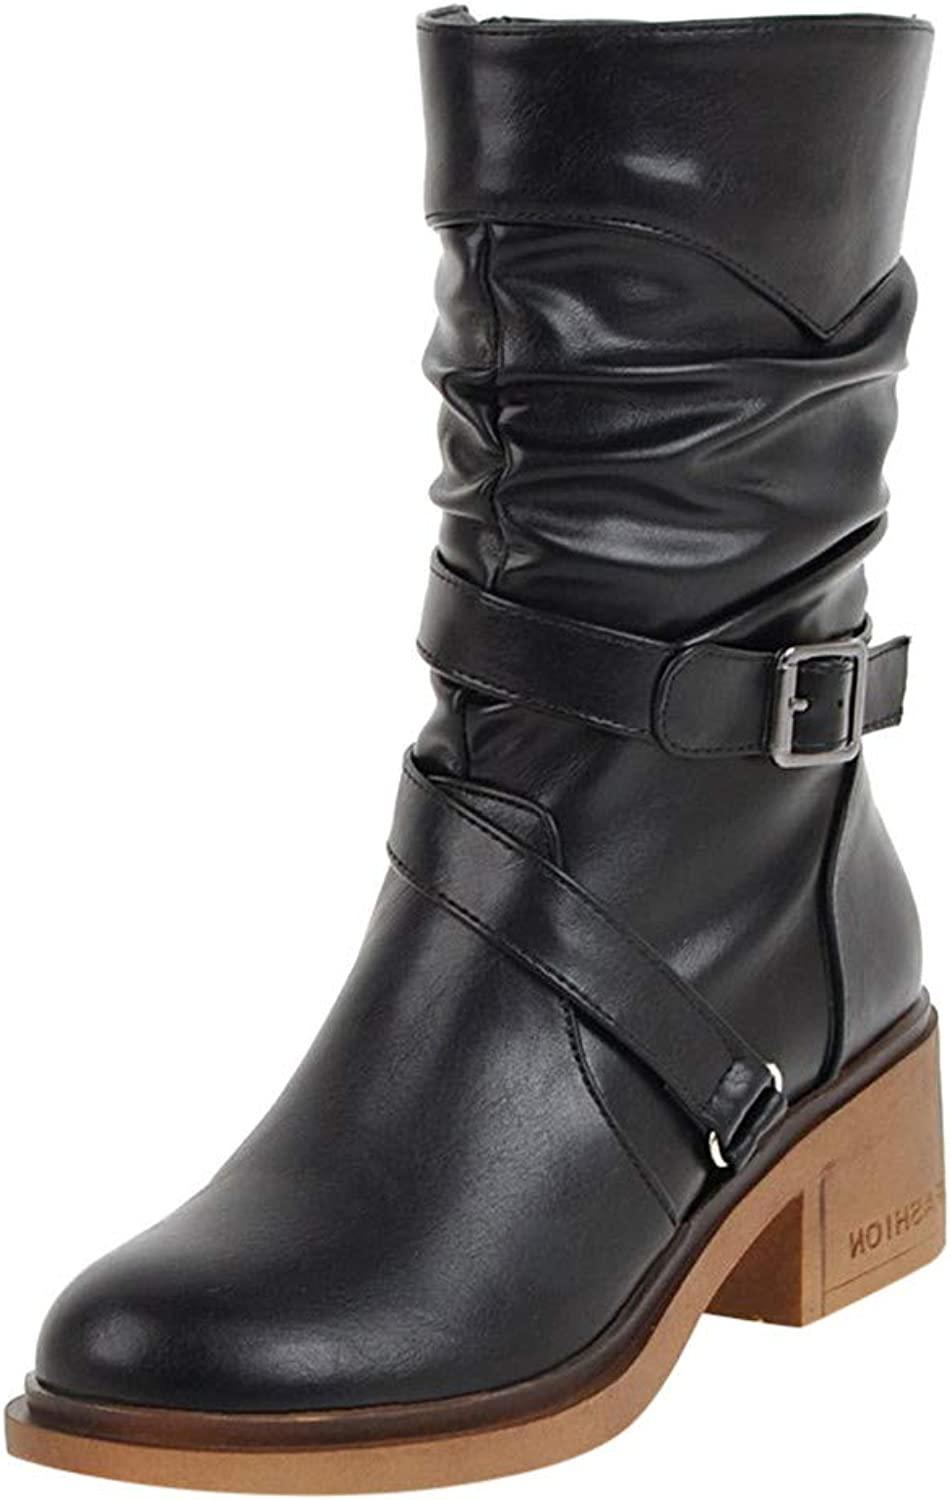 RedBrowm-women European Warm Metal Leather Retro Ankle Martin Boots Round Toe shoes